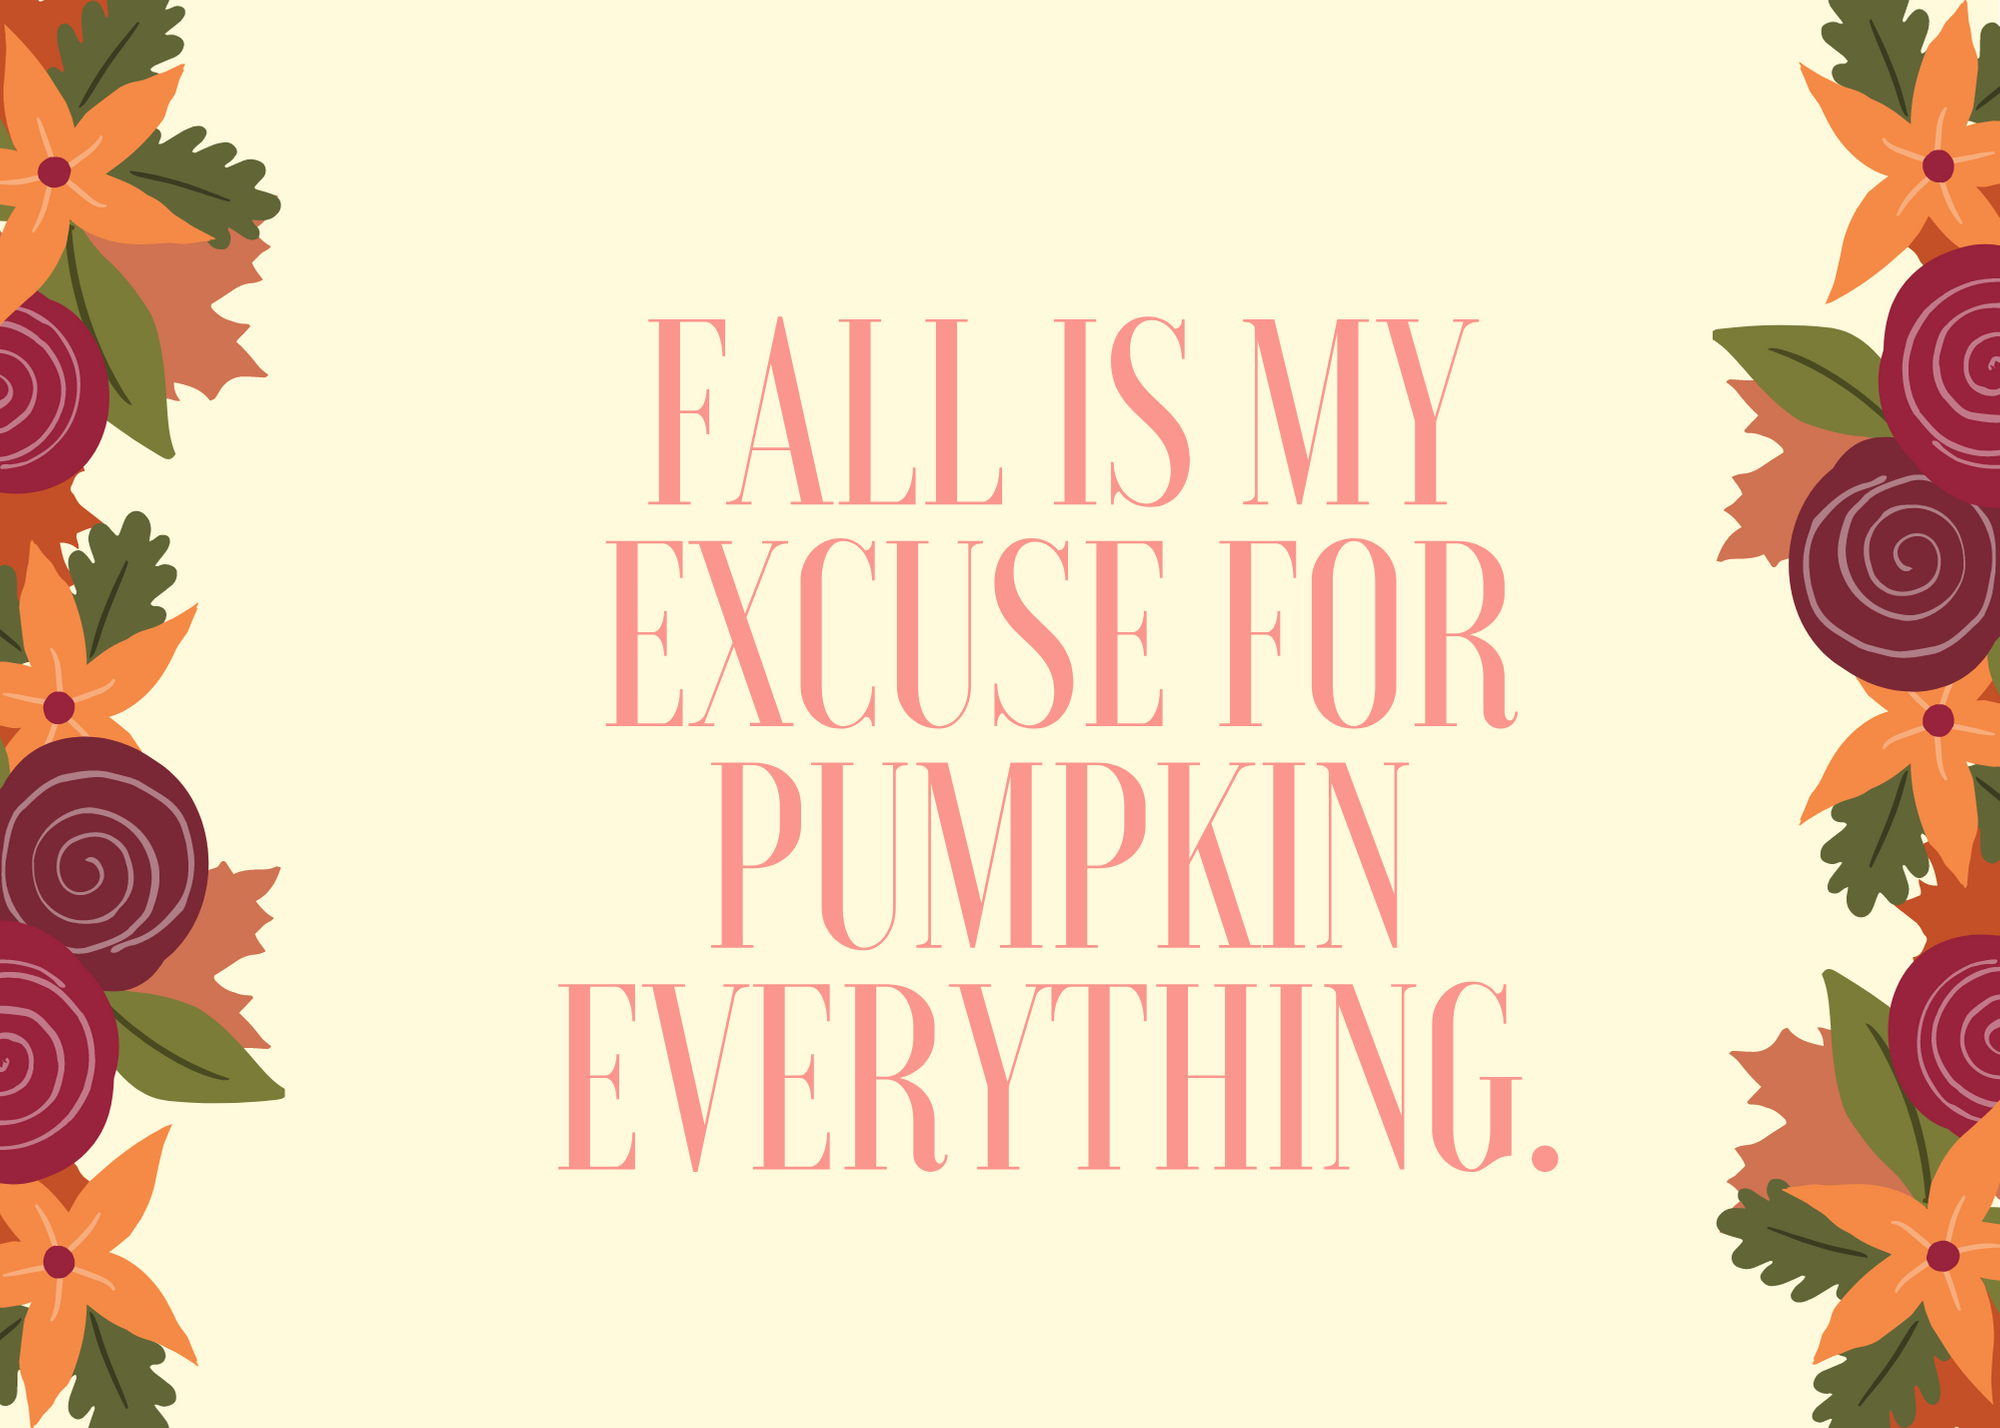 Funny Fall Instagram Caption About Pumpkin Everything